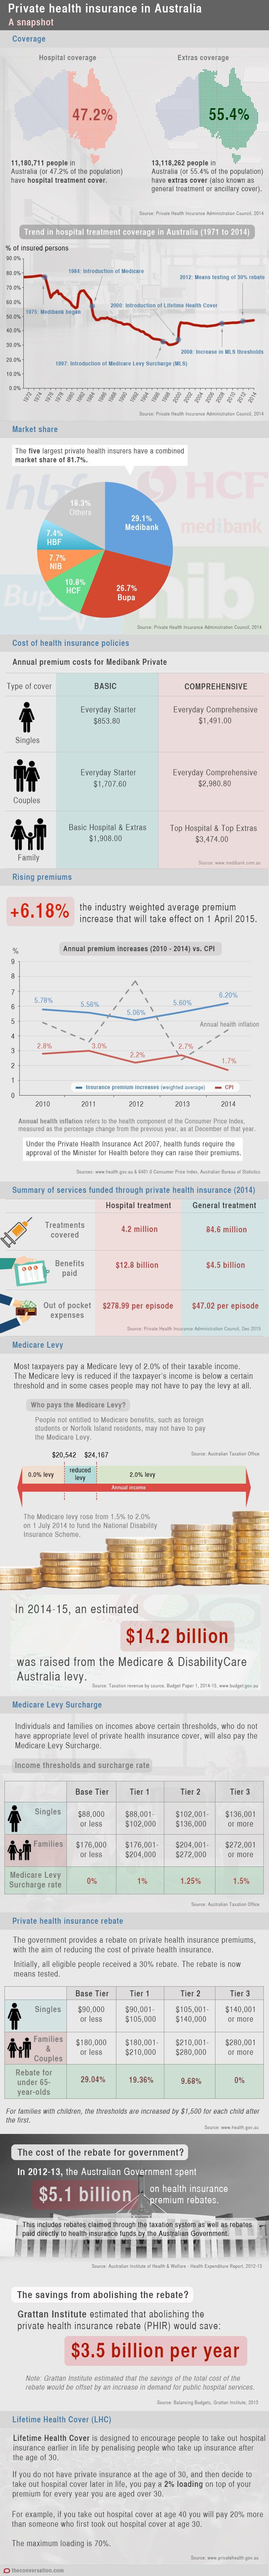 Infographic: A Snapshot Of Private Health Insurance In Australia Sbs News